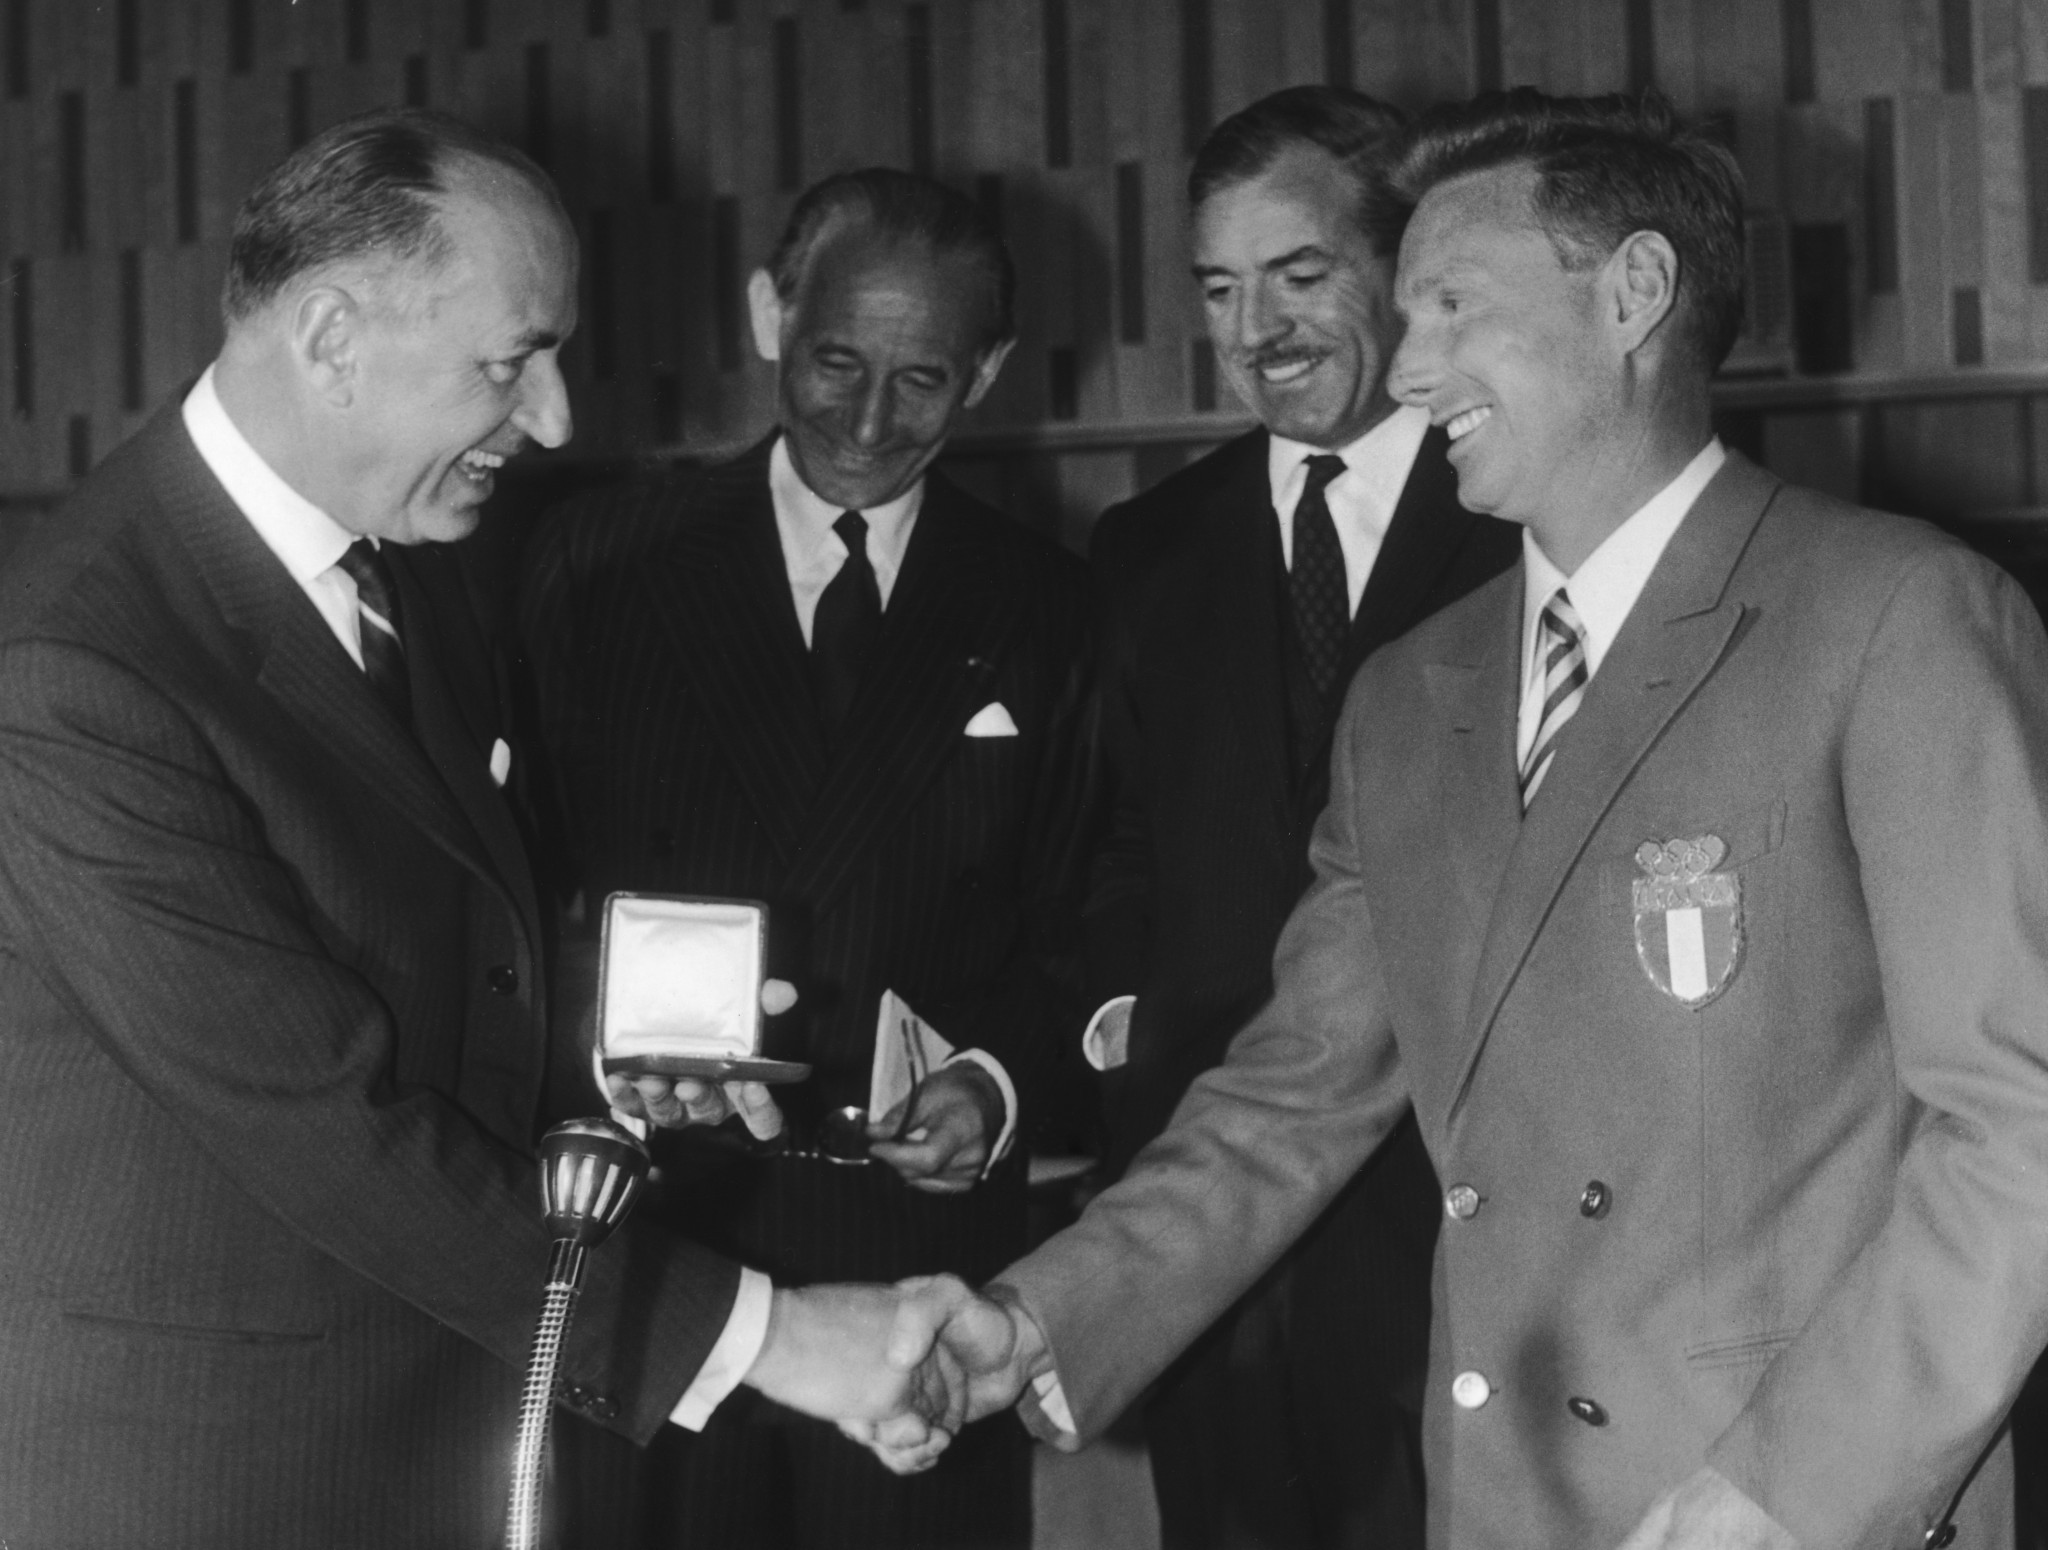 Eugenio Monti was recognised for an act of sportsmanship during the 1964 Winter Olympics in Innsbruck ©Getty Images